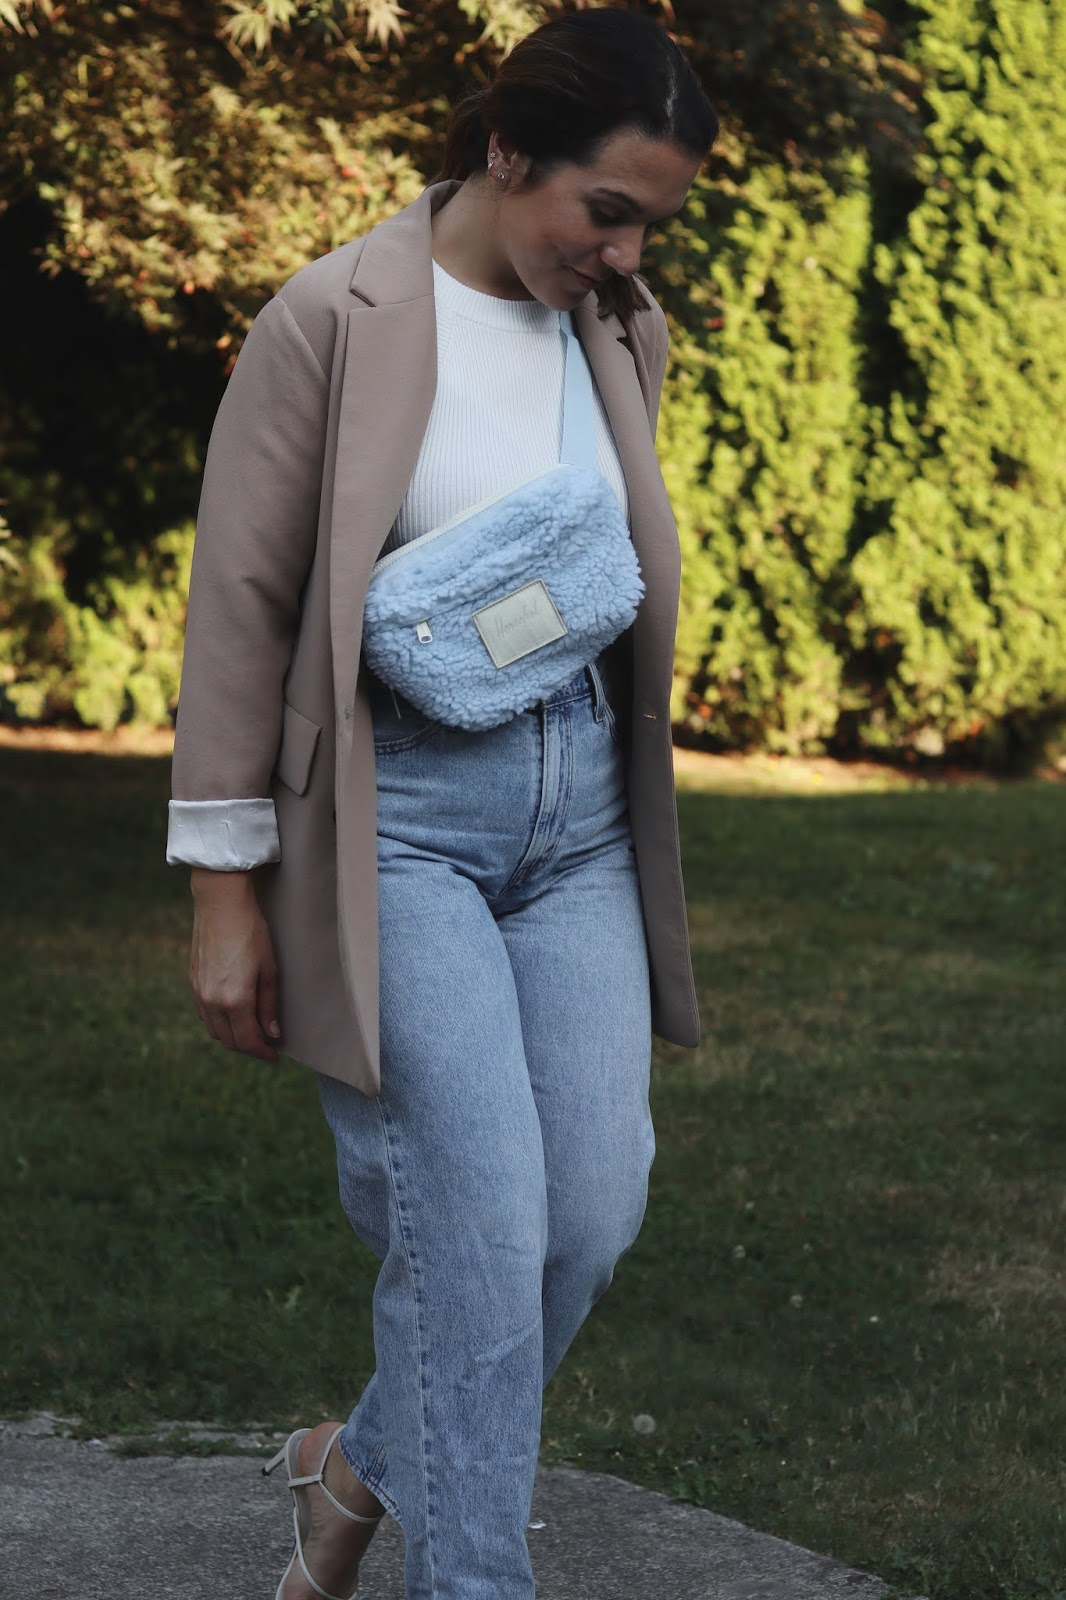 herschel x nordstrom fanny pack outfit vancouver blogger levi's dad jeans